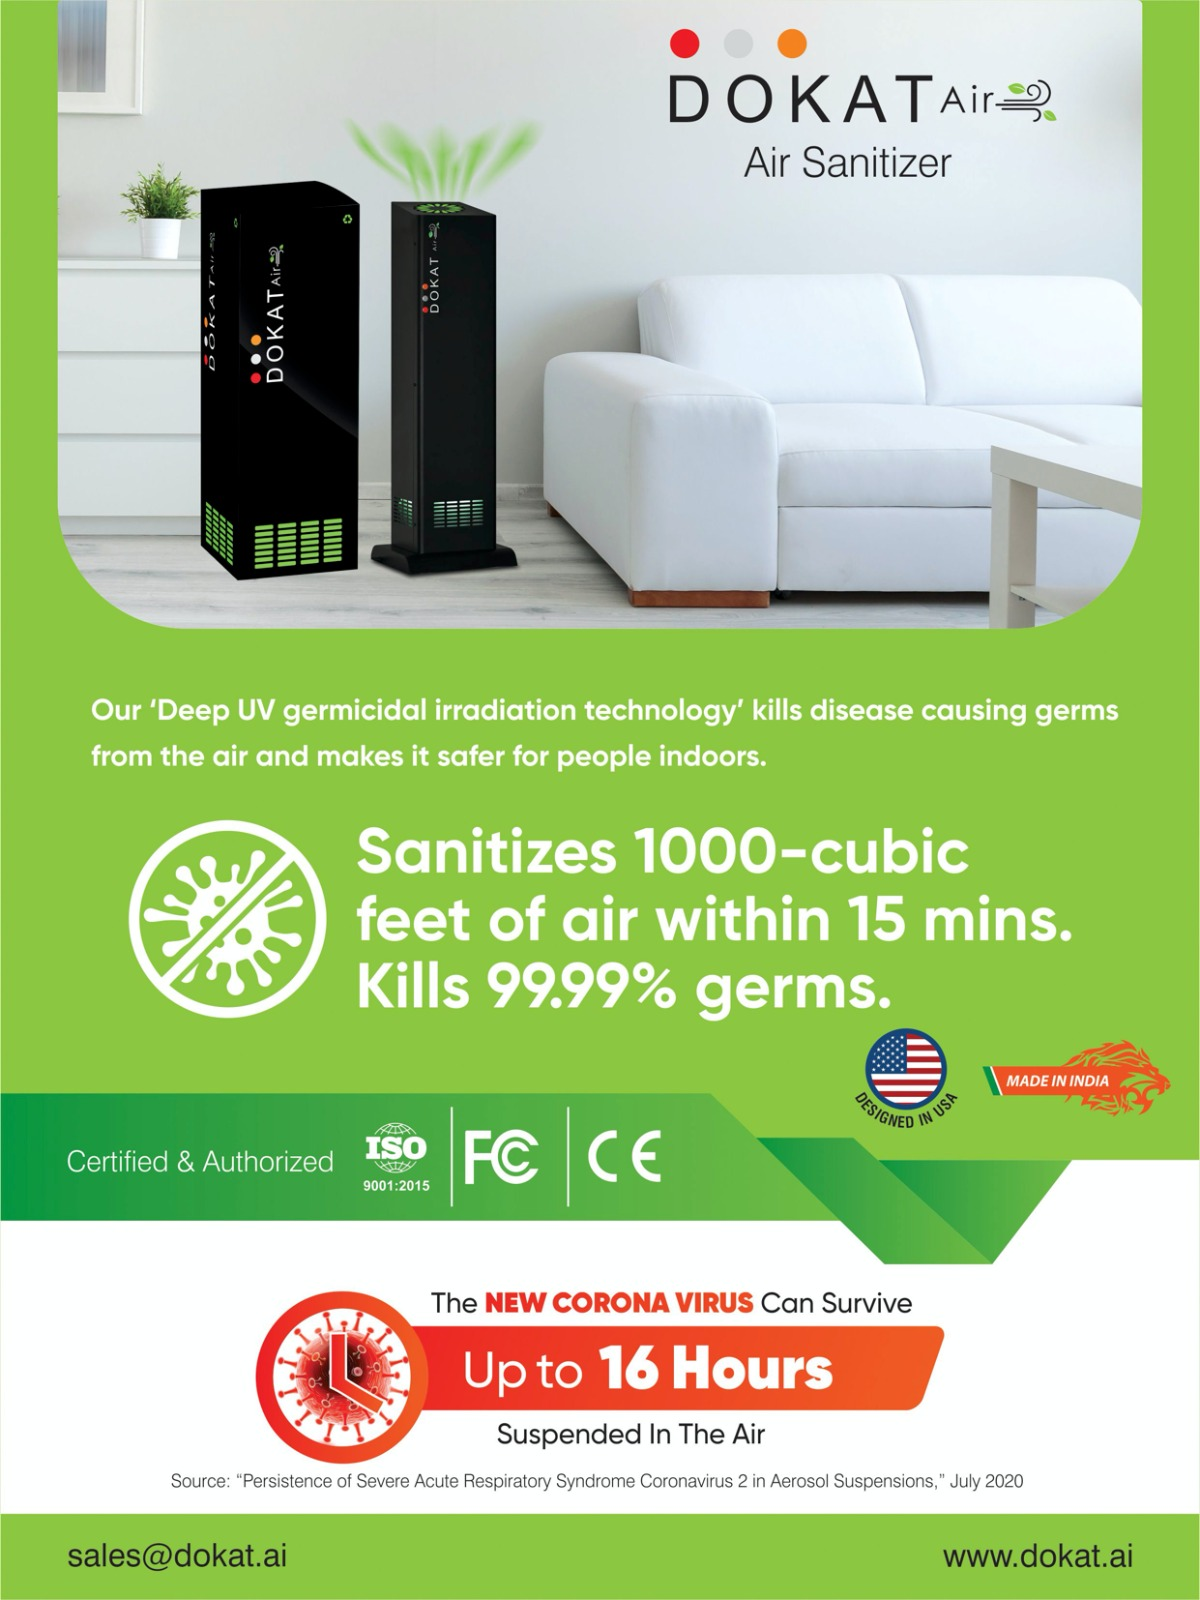 World's first DeepUV Air Sanitizer, launched by Indian startup Dokat Inc.